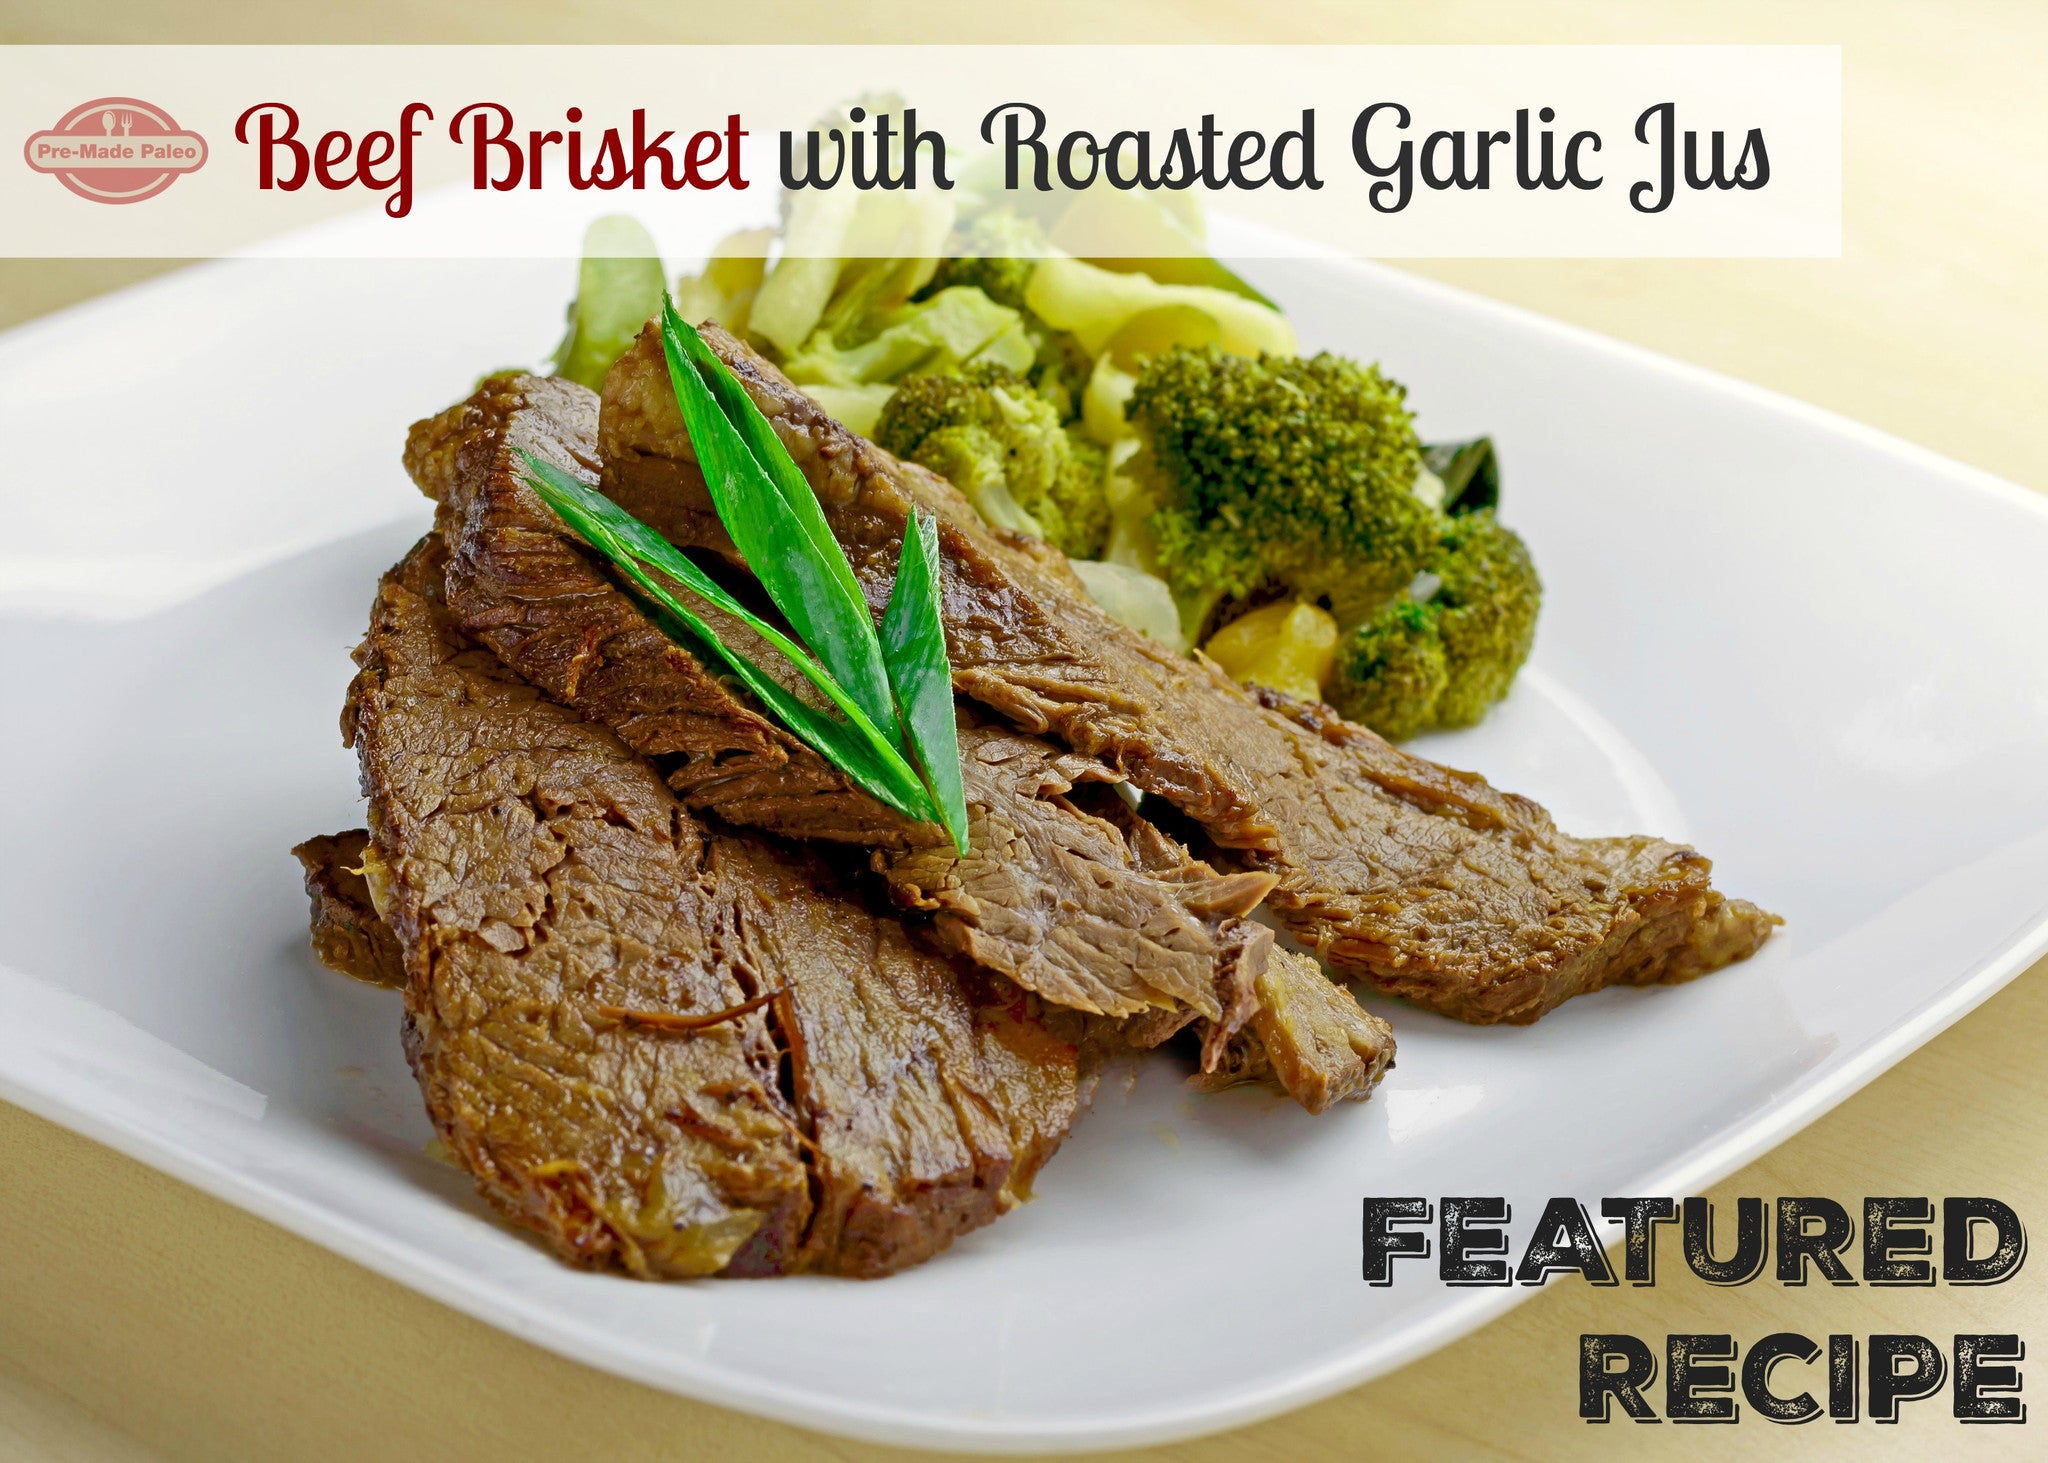 Featured Recipe of the Week: Beef Brisket with Roasted Garlic Jus